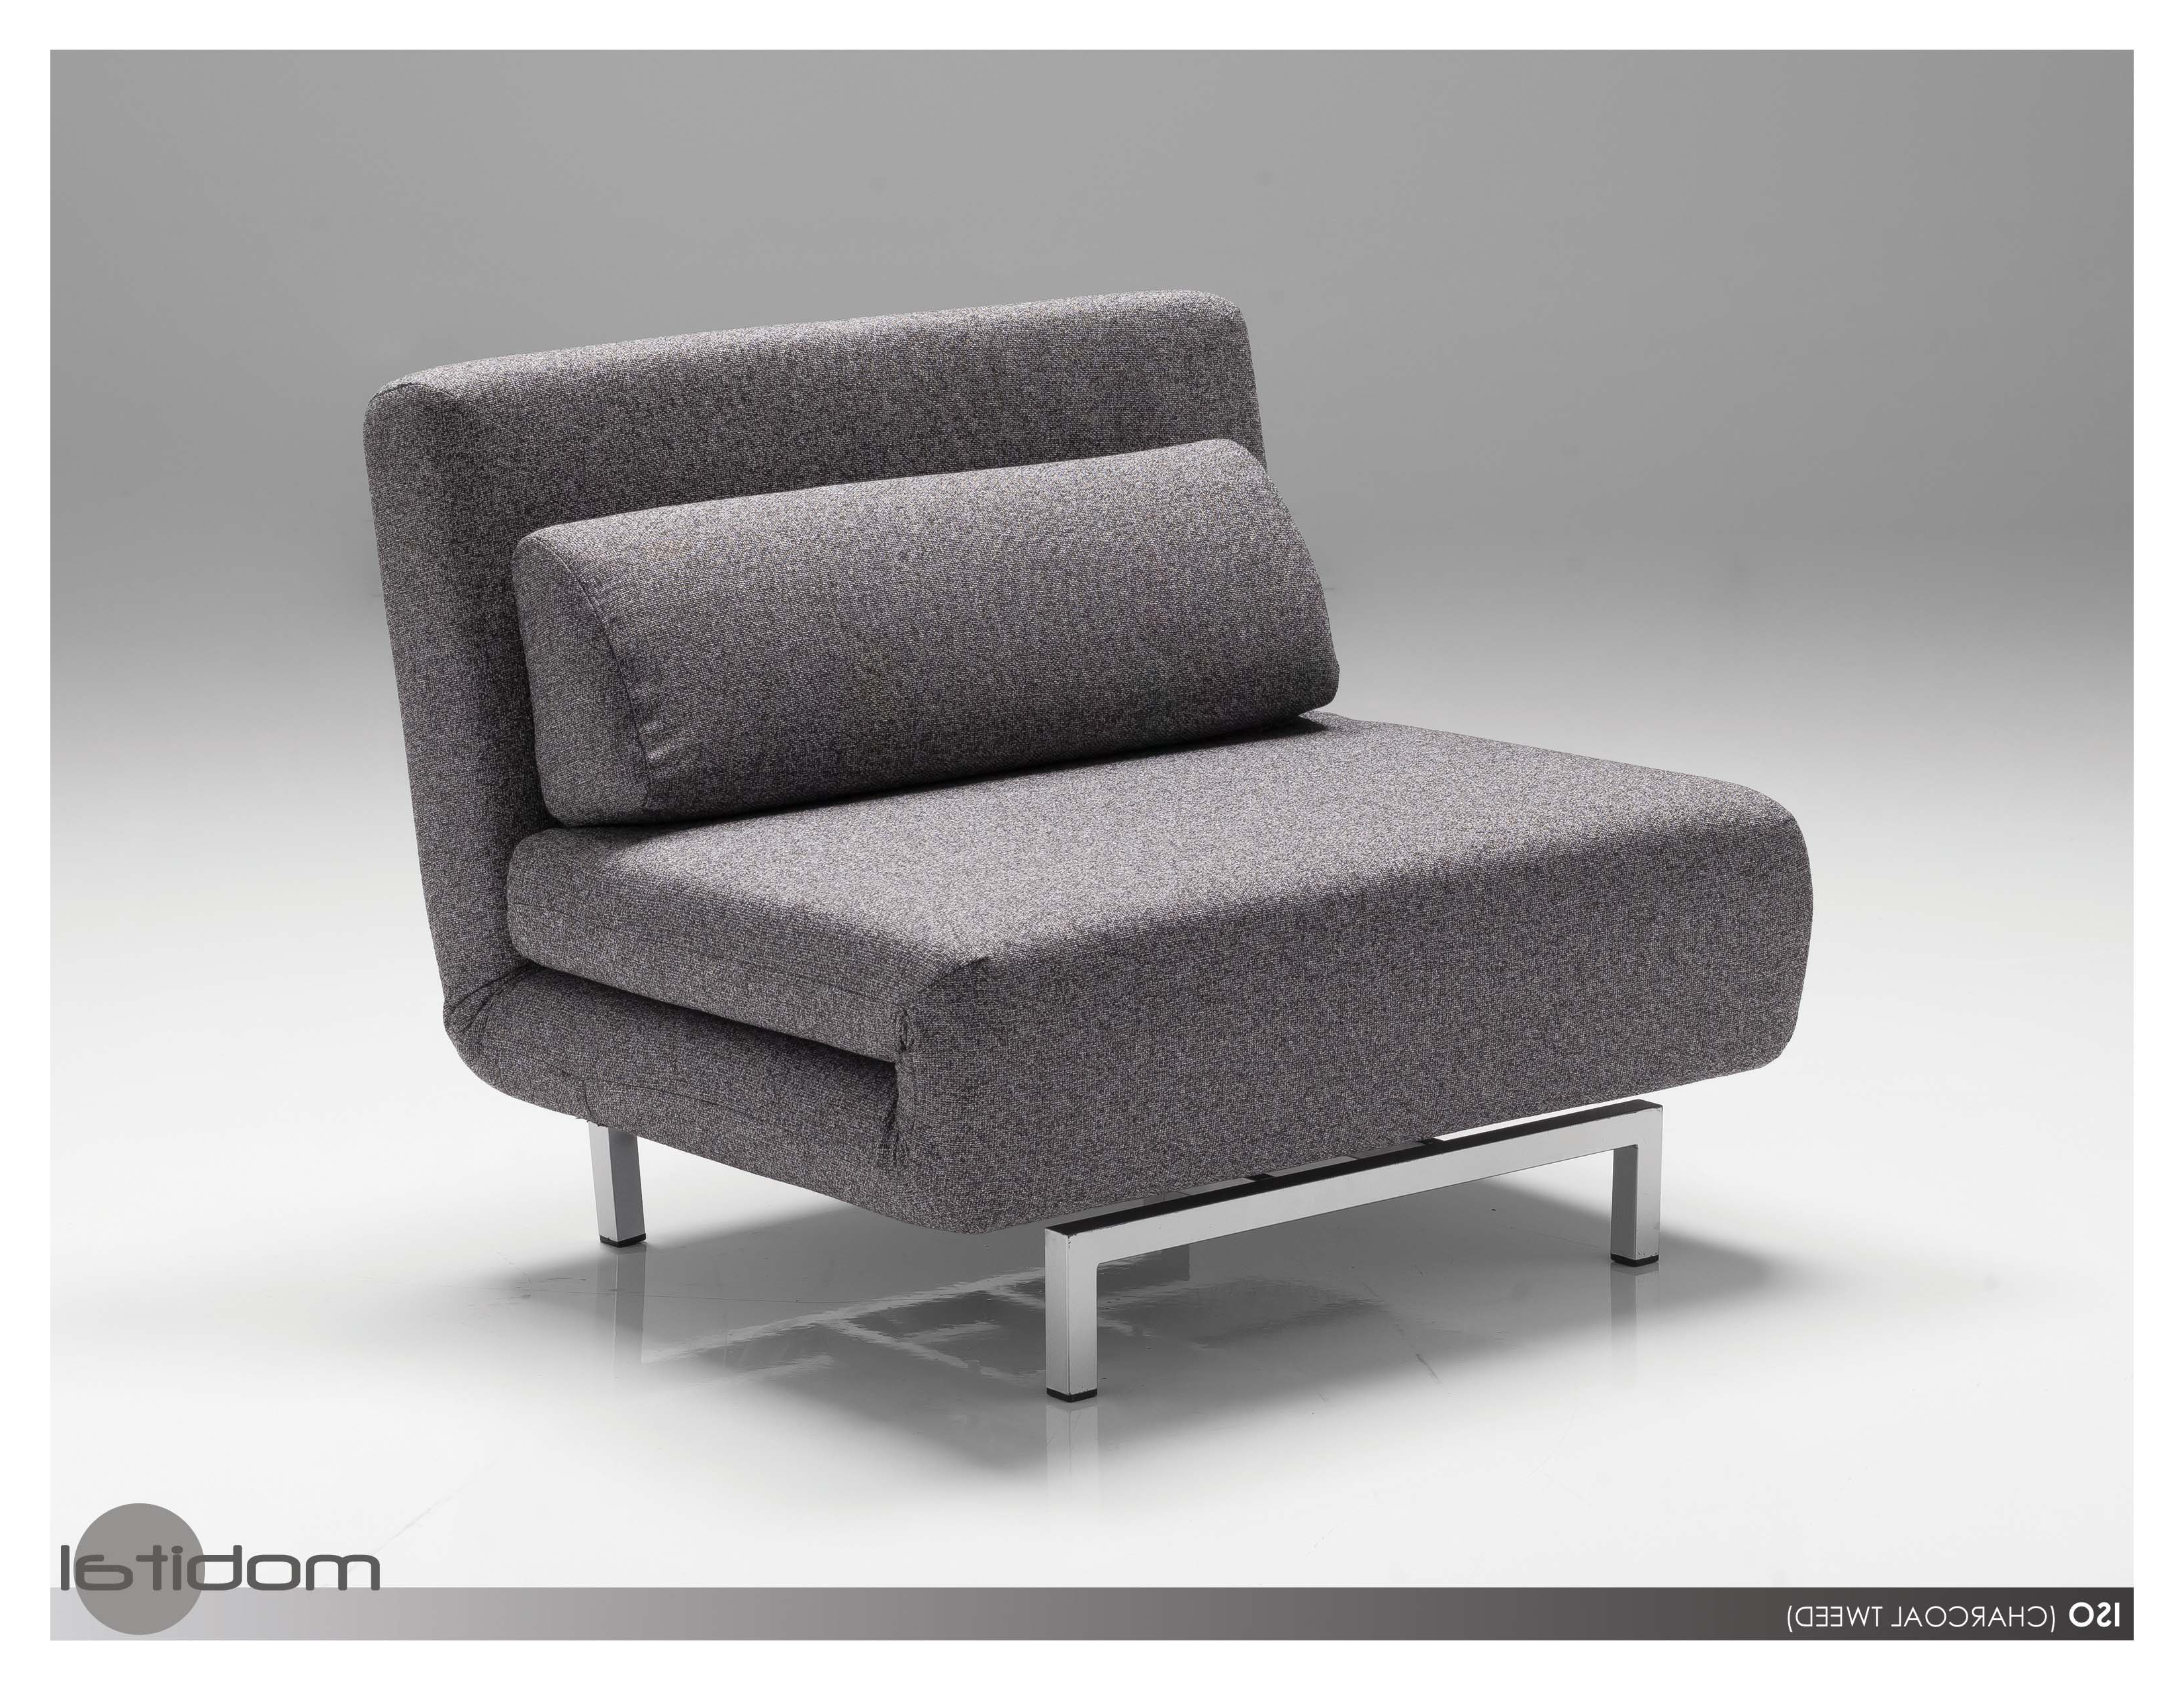 Mobital Iso Sofabed Single Modern Furnishings Inside Well Known Single Chair Sofa Bed (View 7 of 20)